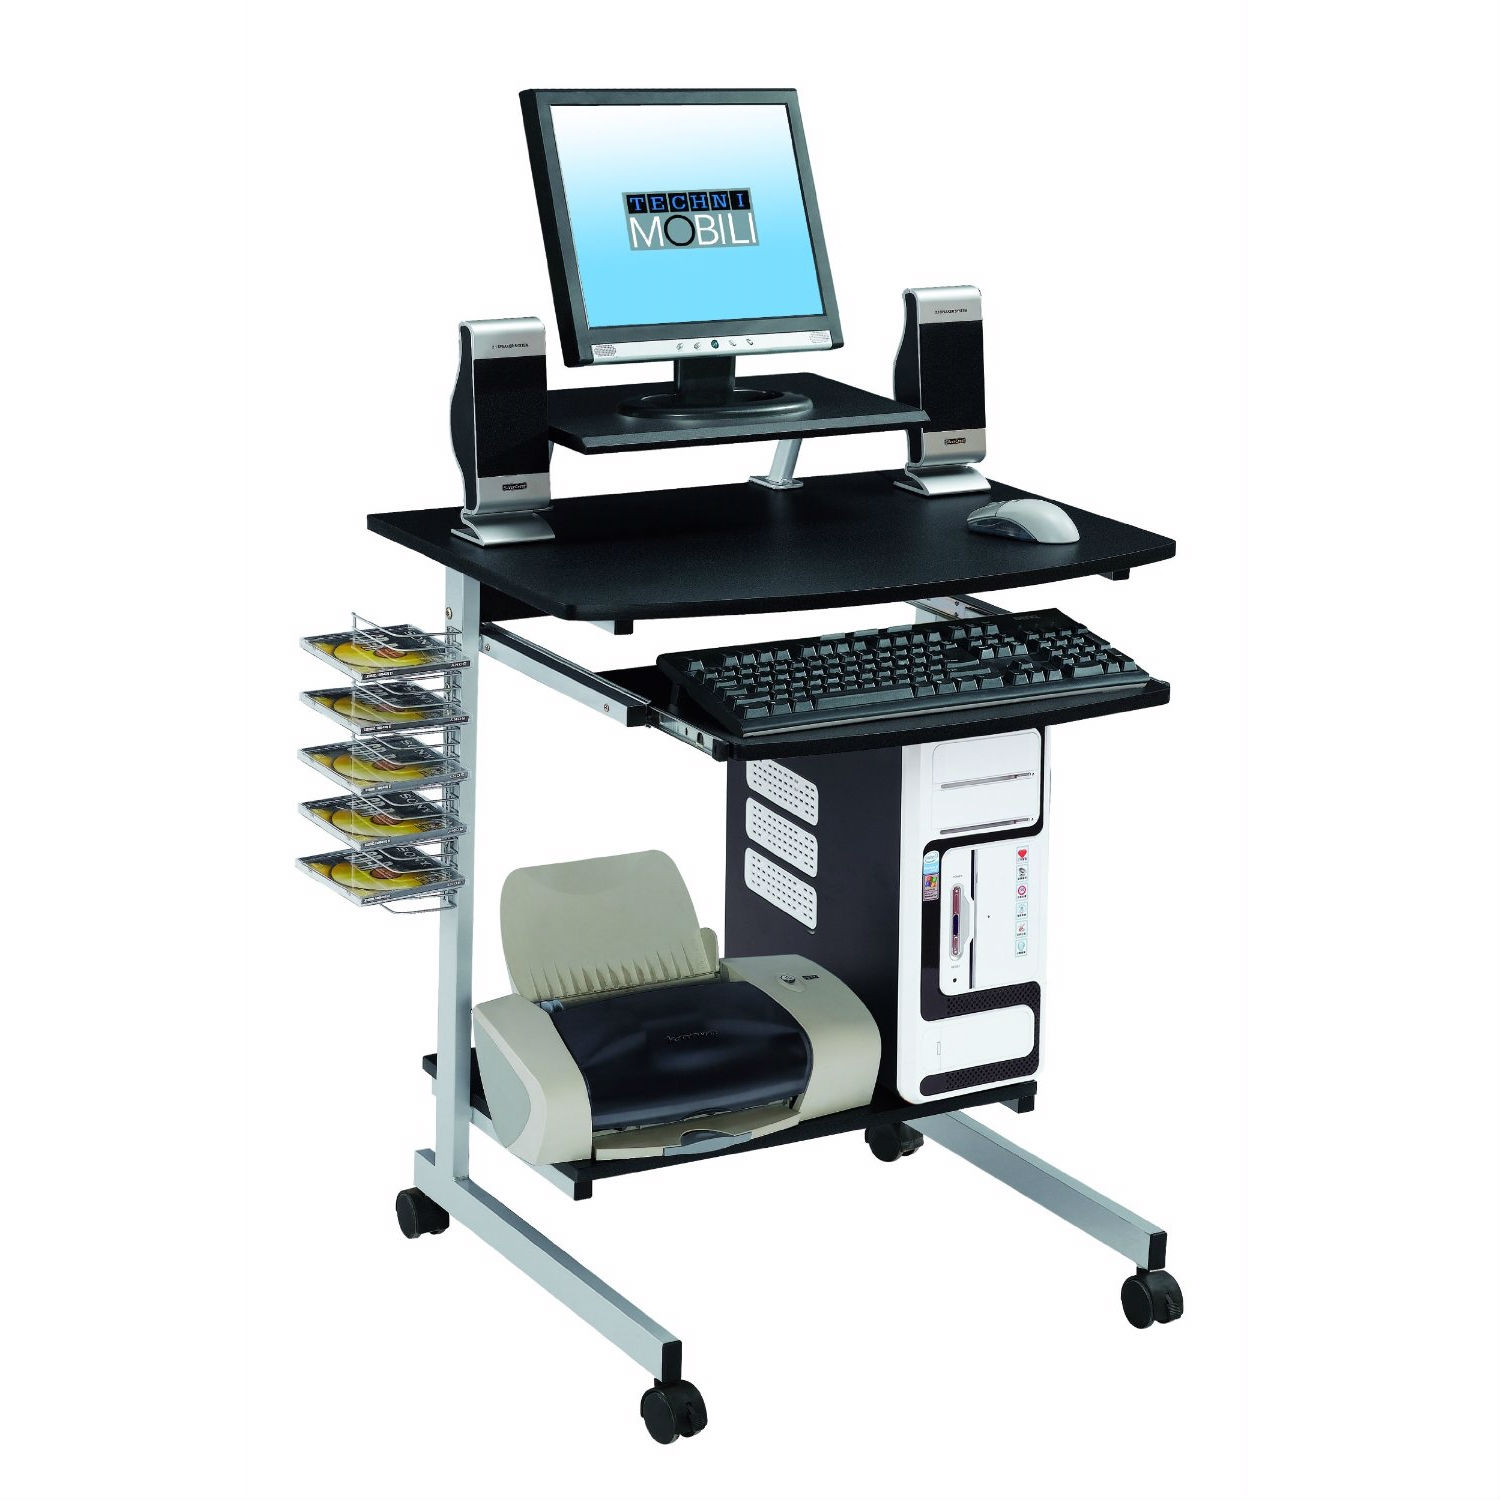 This Mobile Compact Computer Cart Desk with Keyboard Tray is simple and compact computer cart with adjustable shelf. Panels are made of durable MDF material and its frame of powder coated steel frame. Includes a keyboard panel with safety stop, CD media rack, bottom accessory shelf and an adjustable printer/monitor shelf which can be placed center, left of right. Ready and easy to assemble. 5 Years Mfg.  Warranty.